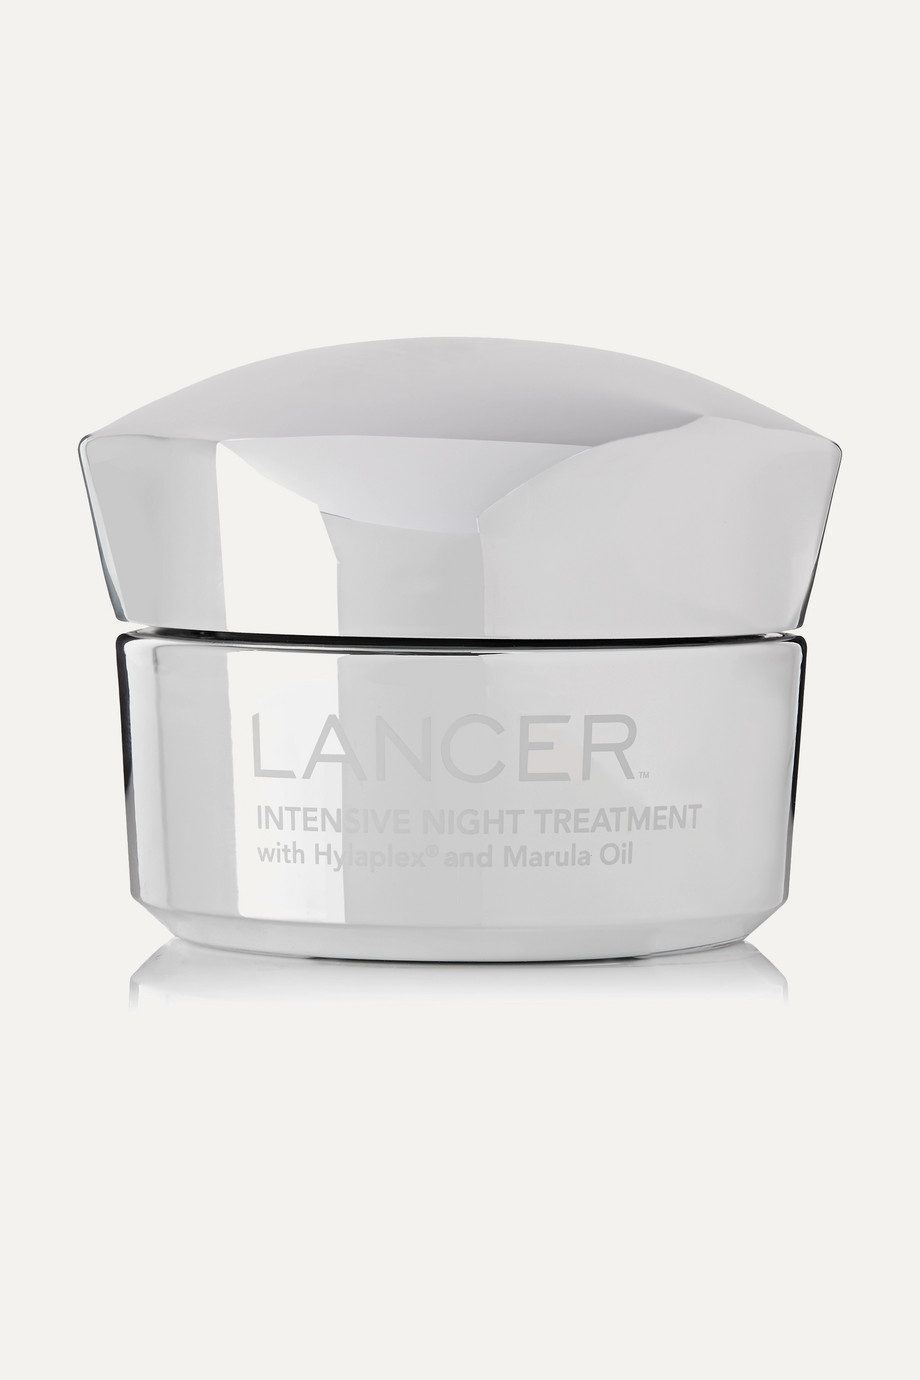 Intensive Night Treatment, 50ml, by Lancer